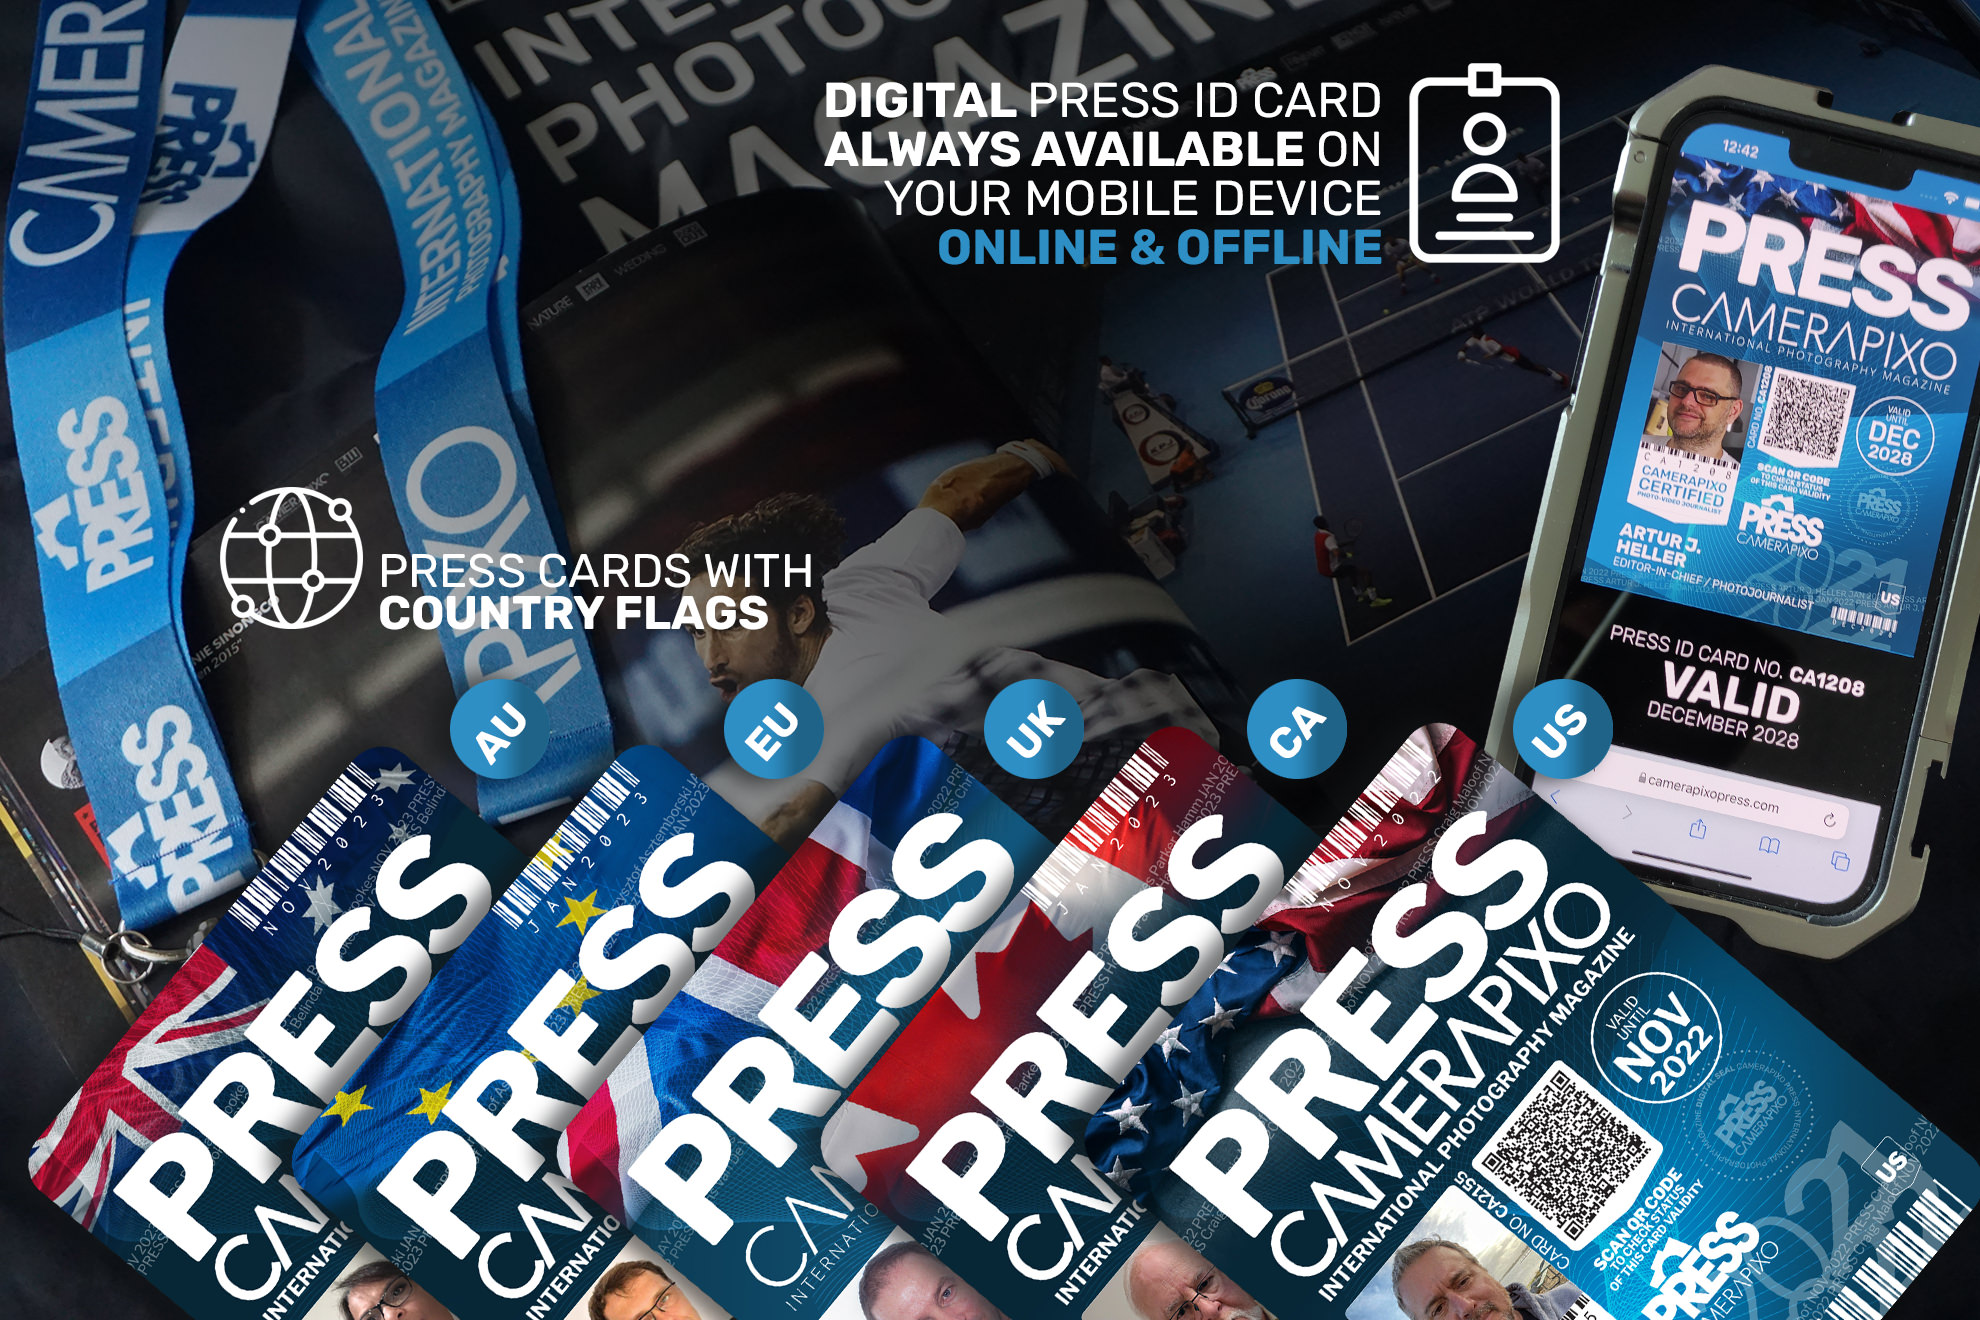 always on digital press id card for freelance photographers and videographers